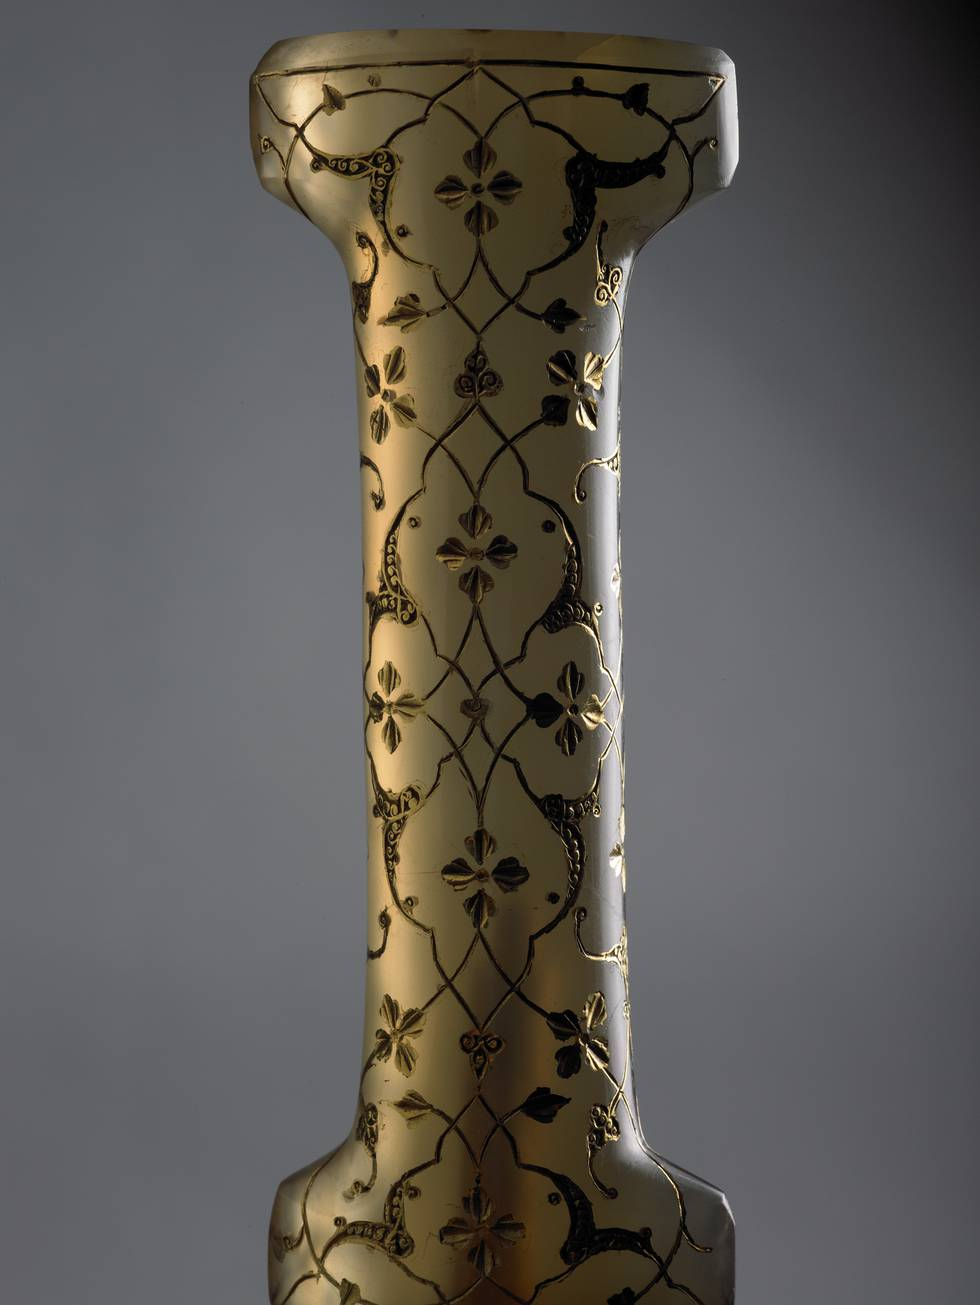 Detail of dagger handle with an inlaid pattern